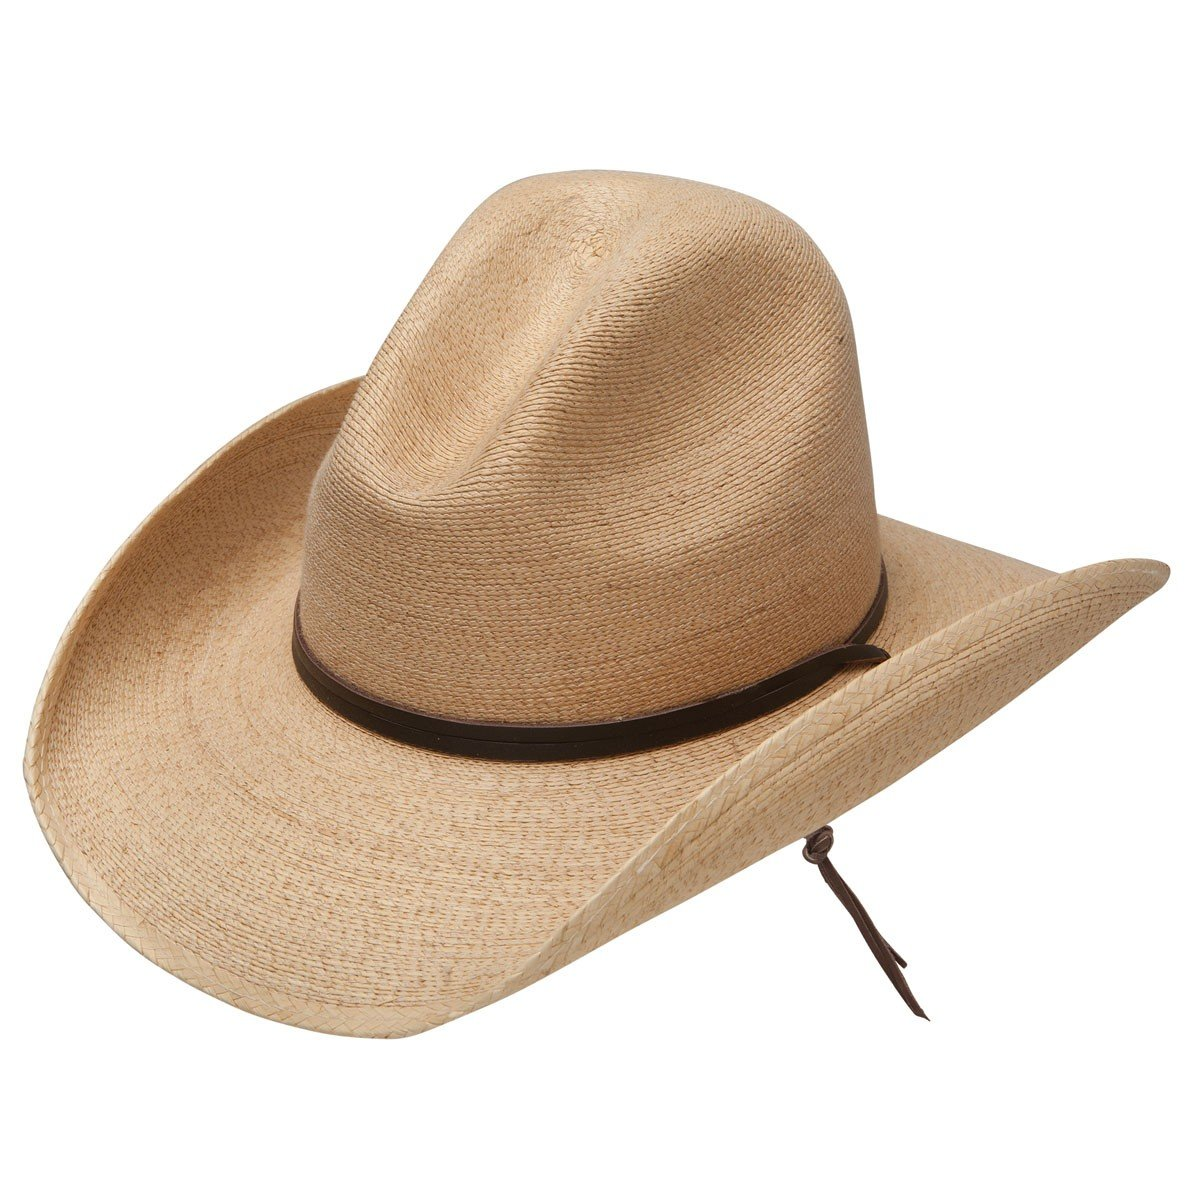 6182332531739 Stetson Bryce - Mexican Palm Straw Cowboy Hat at Amazon Men s Clothing  store